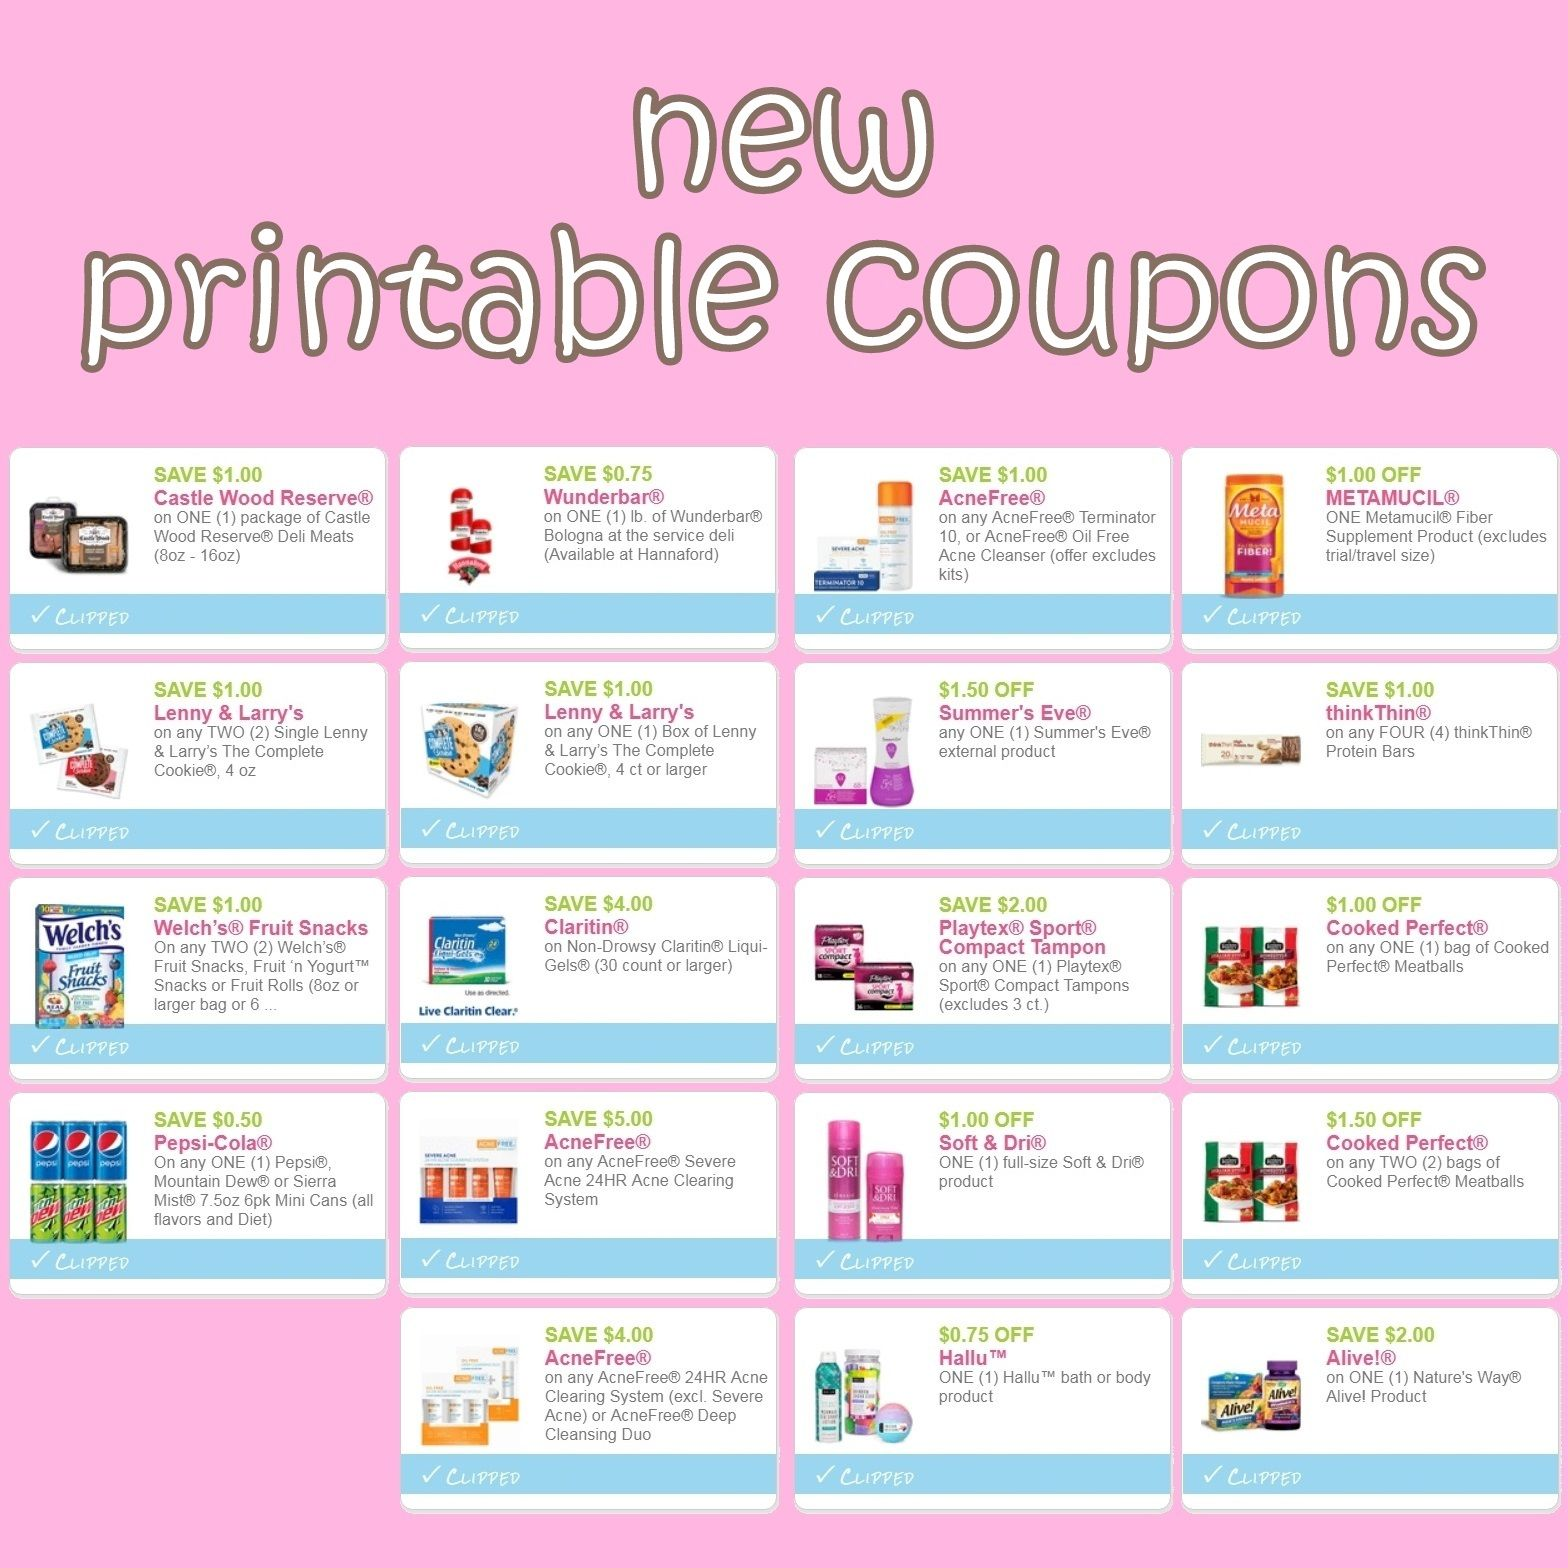 New Printable Coupons For Pepsi Playtex Summer S Eve More Direct Links Http Www Iheartcoupons Net 2018 08 New Pr Printable Coupons Coupons Playtex